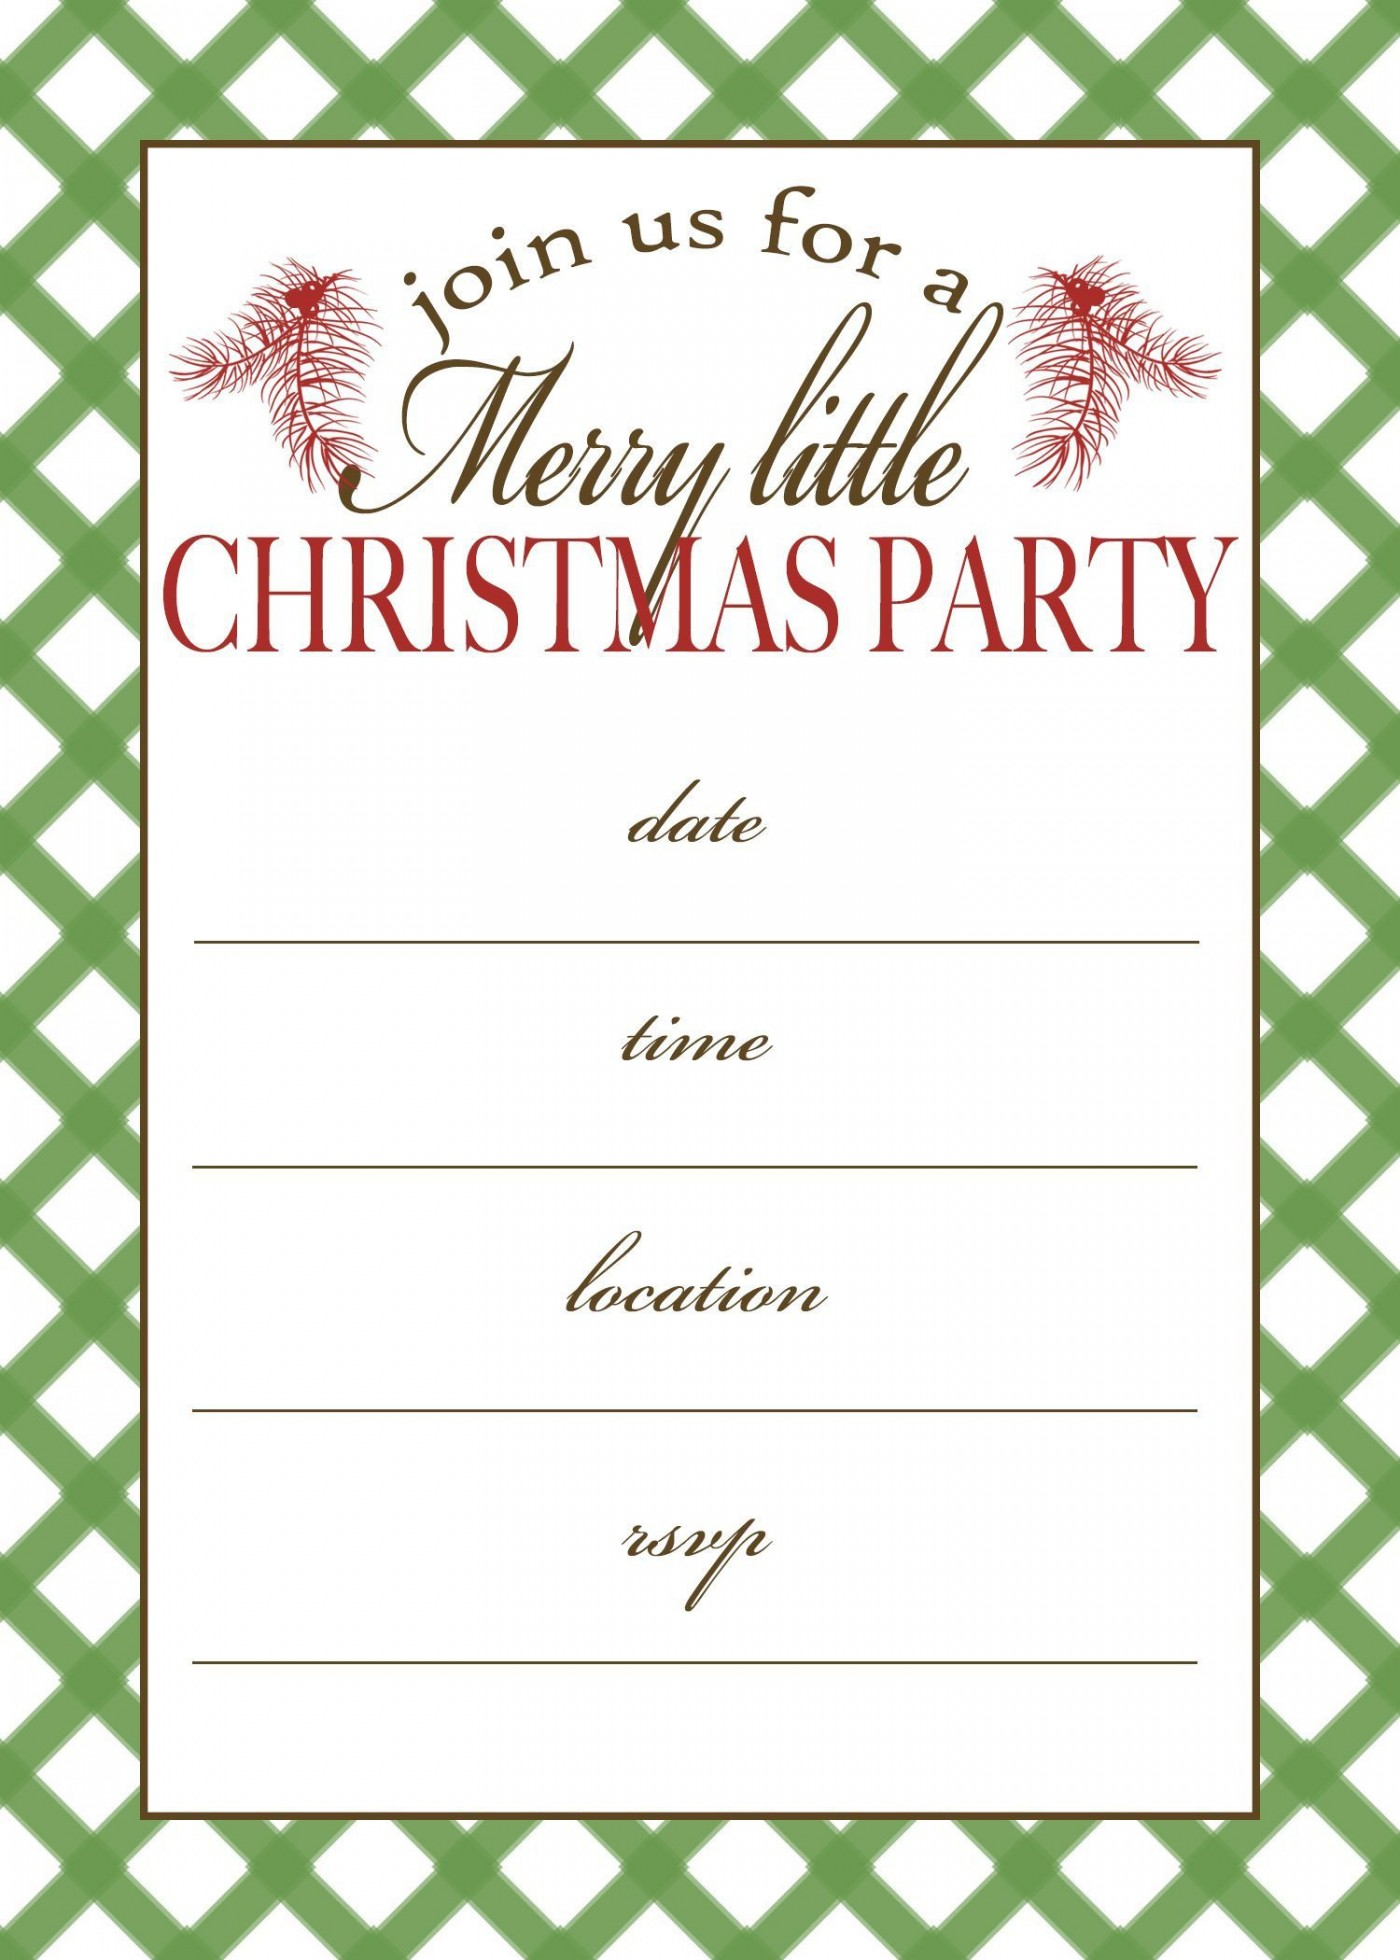 001 Incredible Christma Party Invitation Template Sample  Holiday Download Free Psd1400